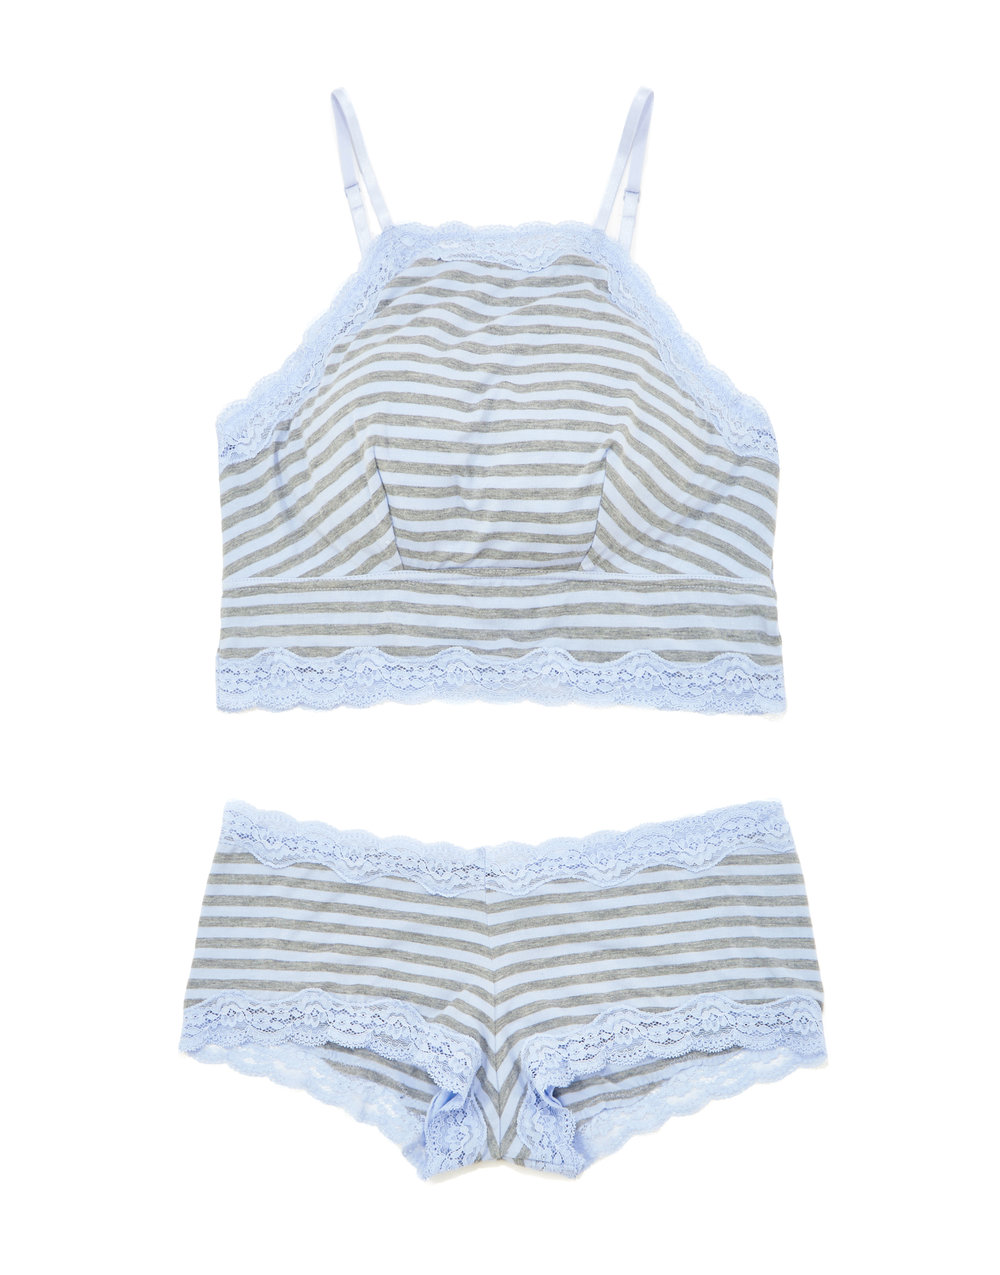 fa17_still_sebby_unlined_hipster_web_sebby-blue-unlined-bralette-for-women.jpg